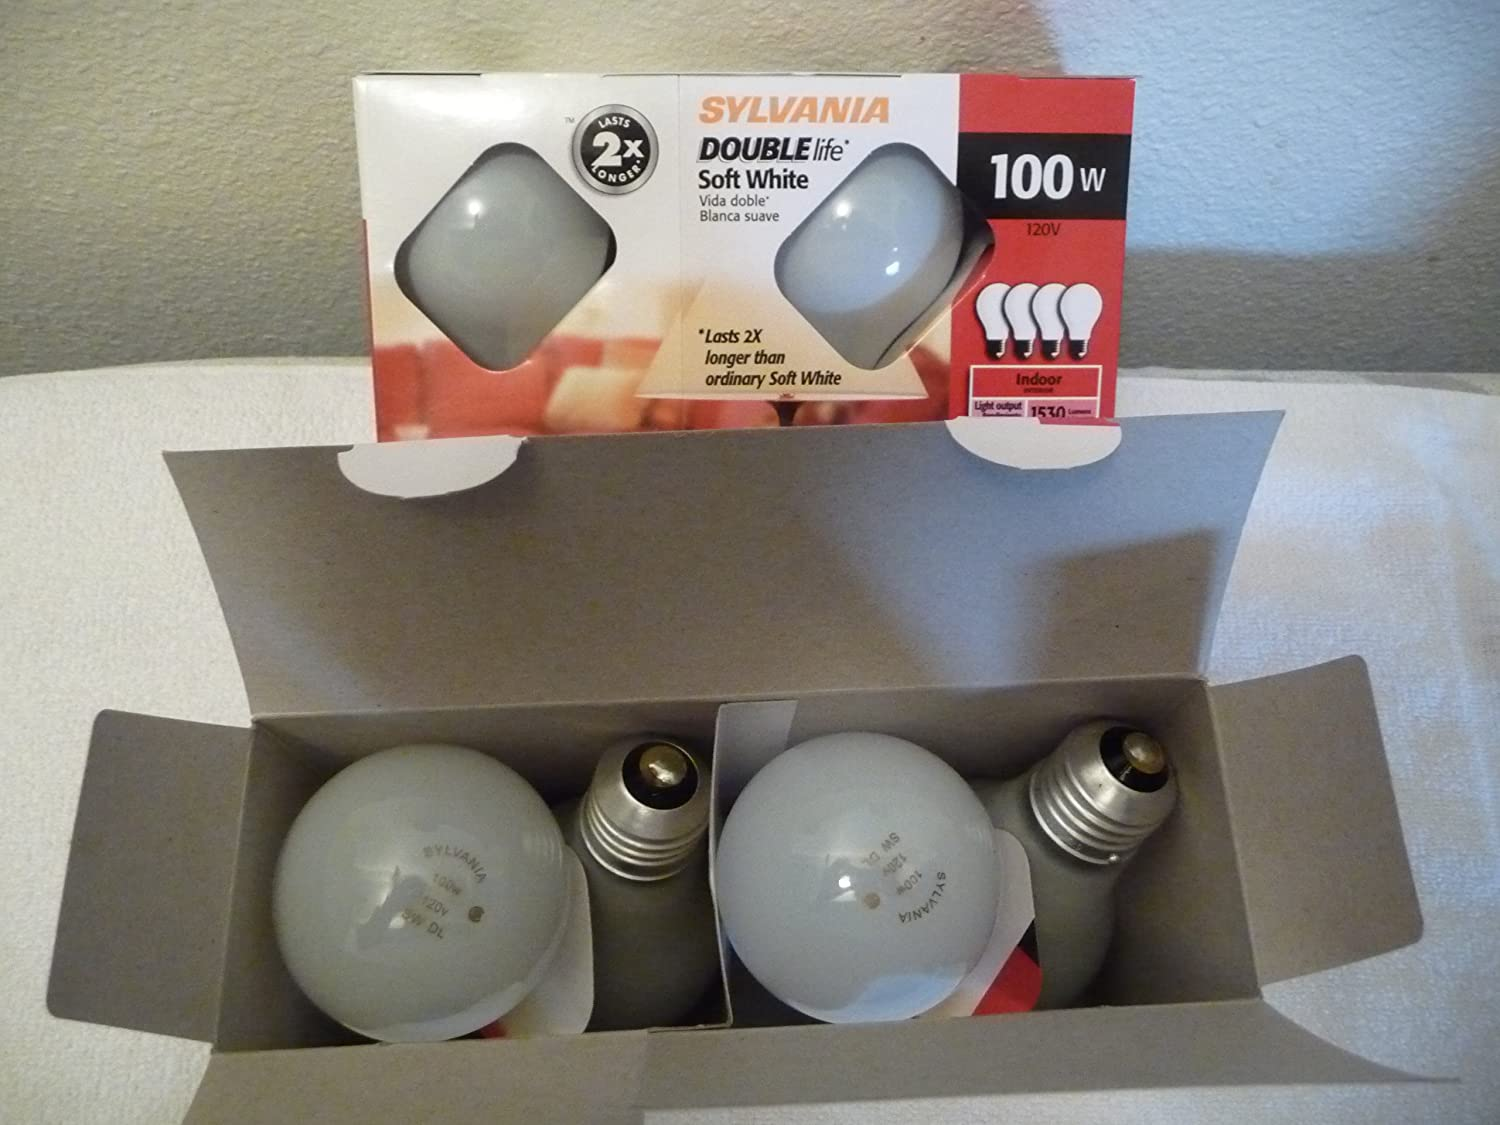 Sylvania Double Life 100 Watt Soft White Bulbs - Incandescent Bulbs - Amazon.com